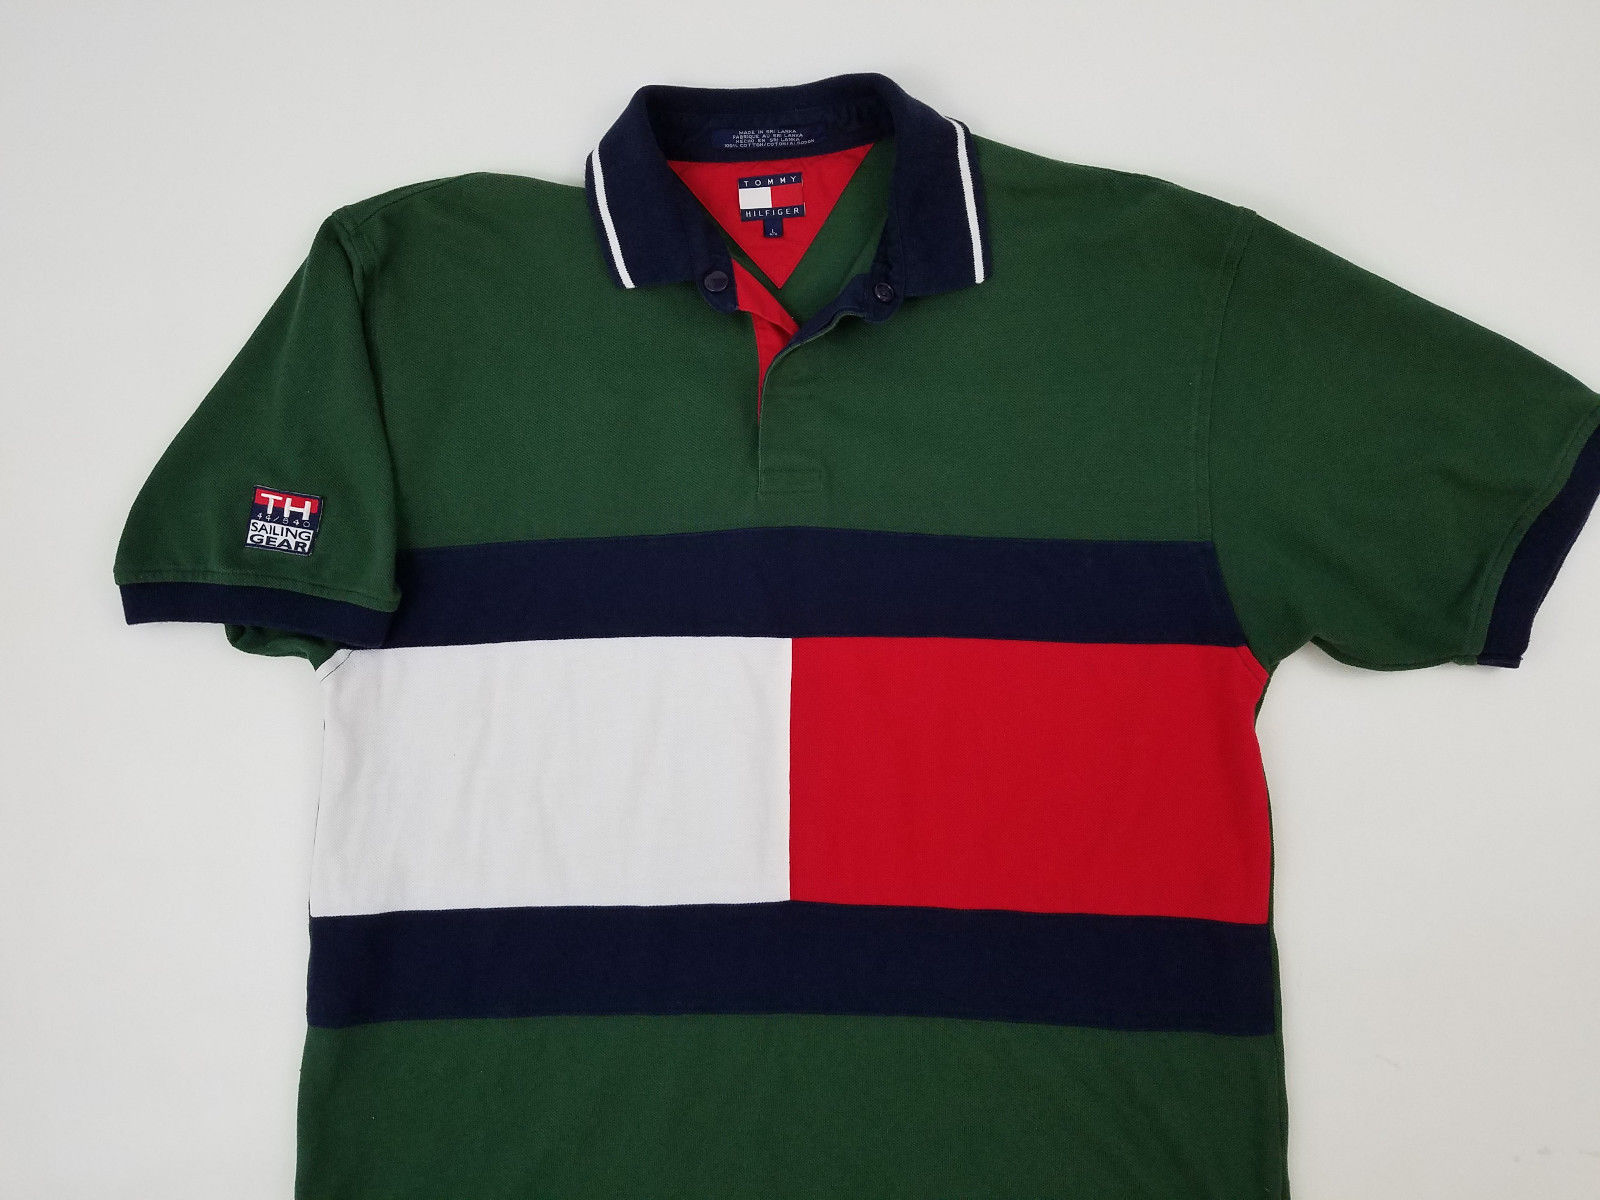 067404199 Tommy Hilfiger Sailing Gear Big Flag Spellout Polo Rugby Shirt Vintage 90s  - Ninety One Vintage